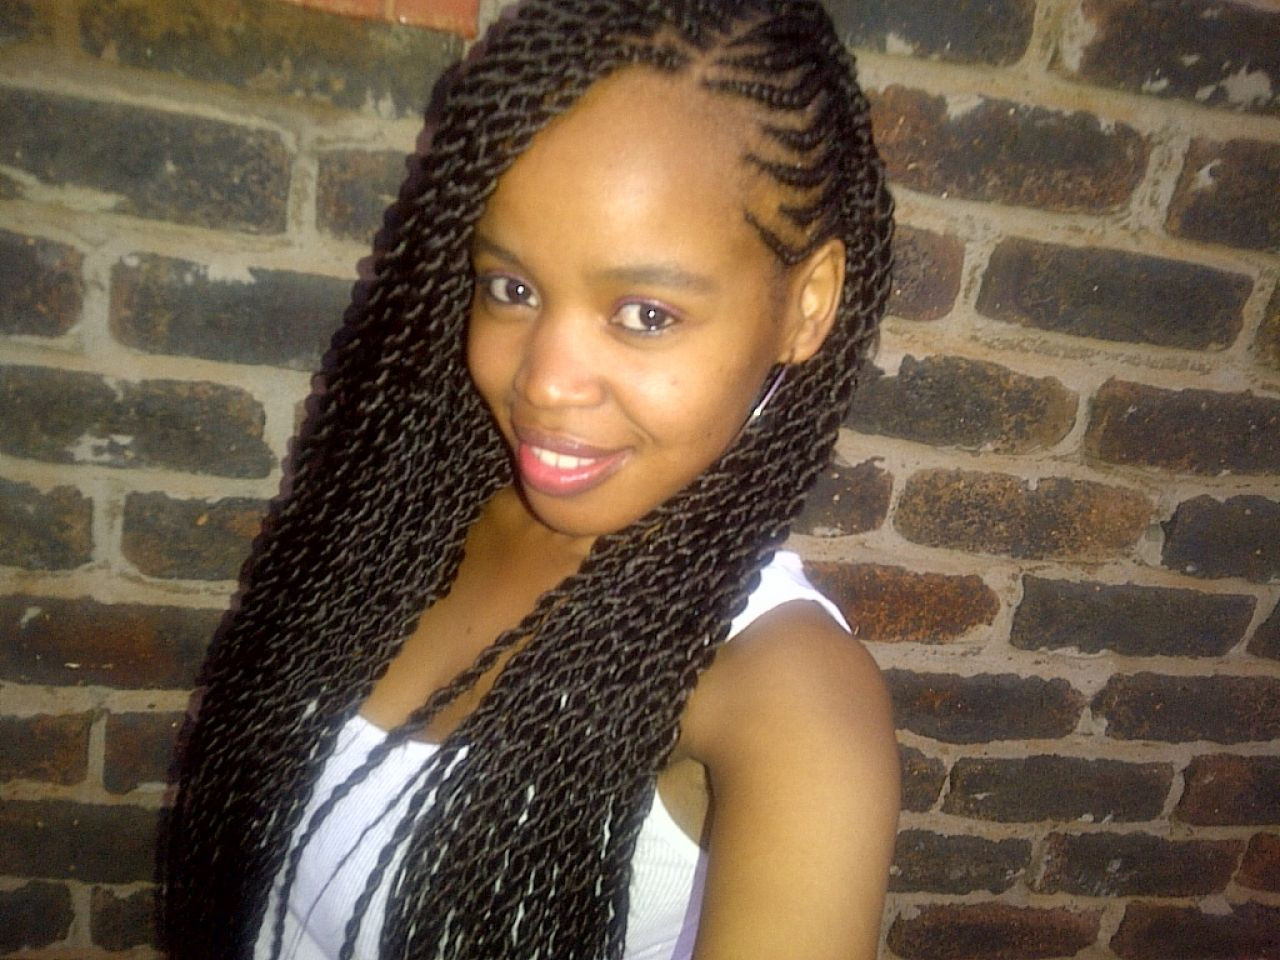 Best ideas about Young Black Girl Hairstyles . Save or Pin 20 Cute Hairstyles for Black Teenage Girls Now.